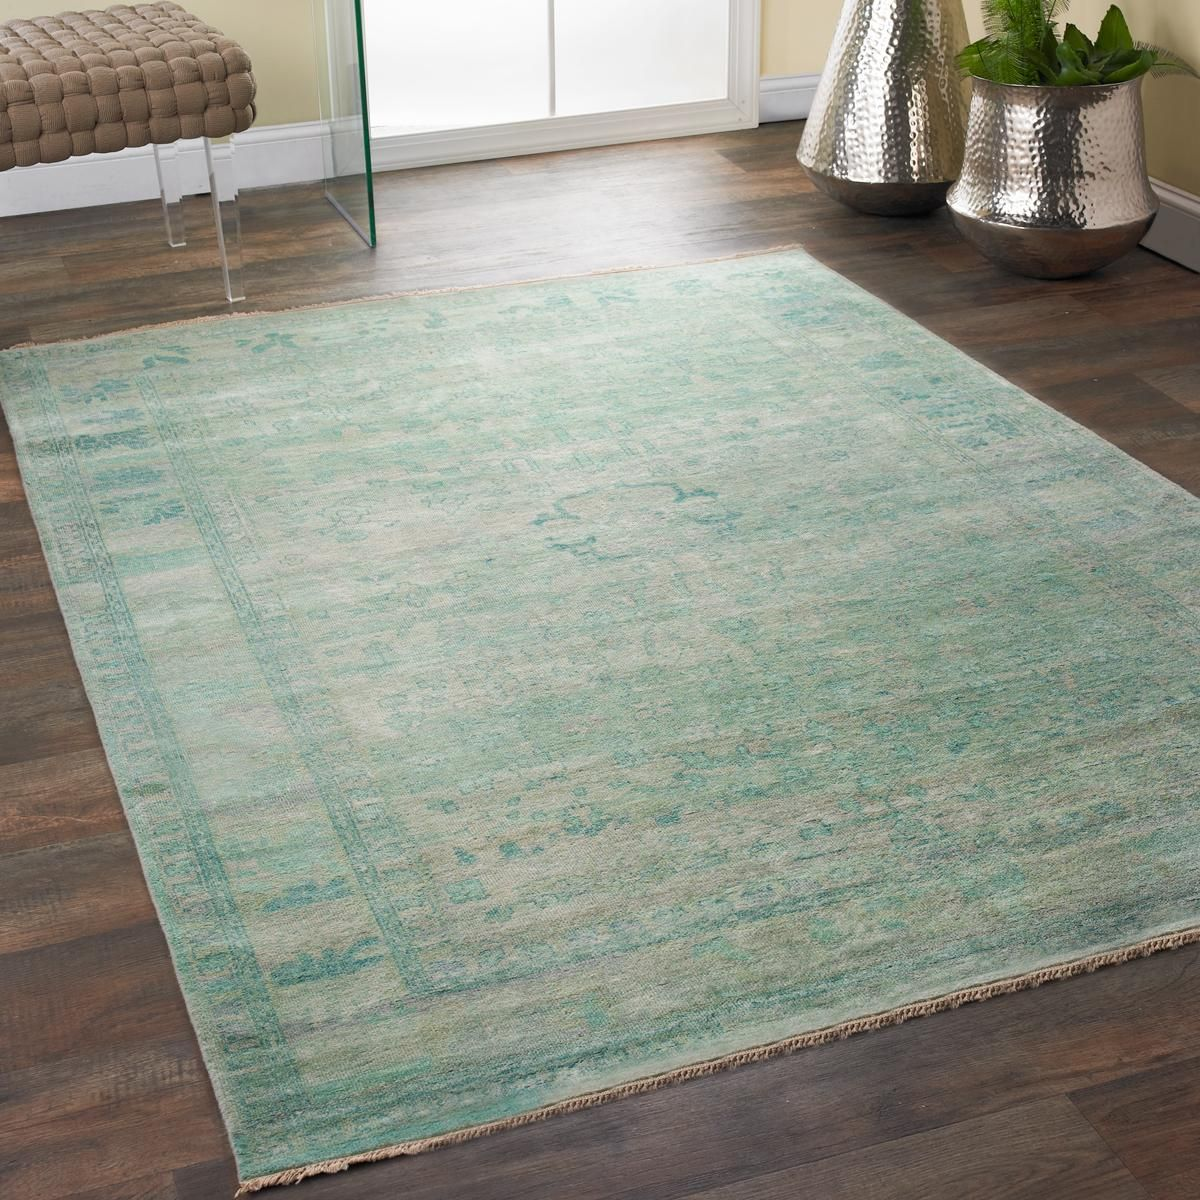 Shimmering Wash Aqua Green Rug This Fine Hand Knotted Rug